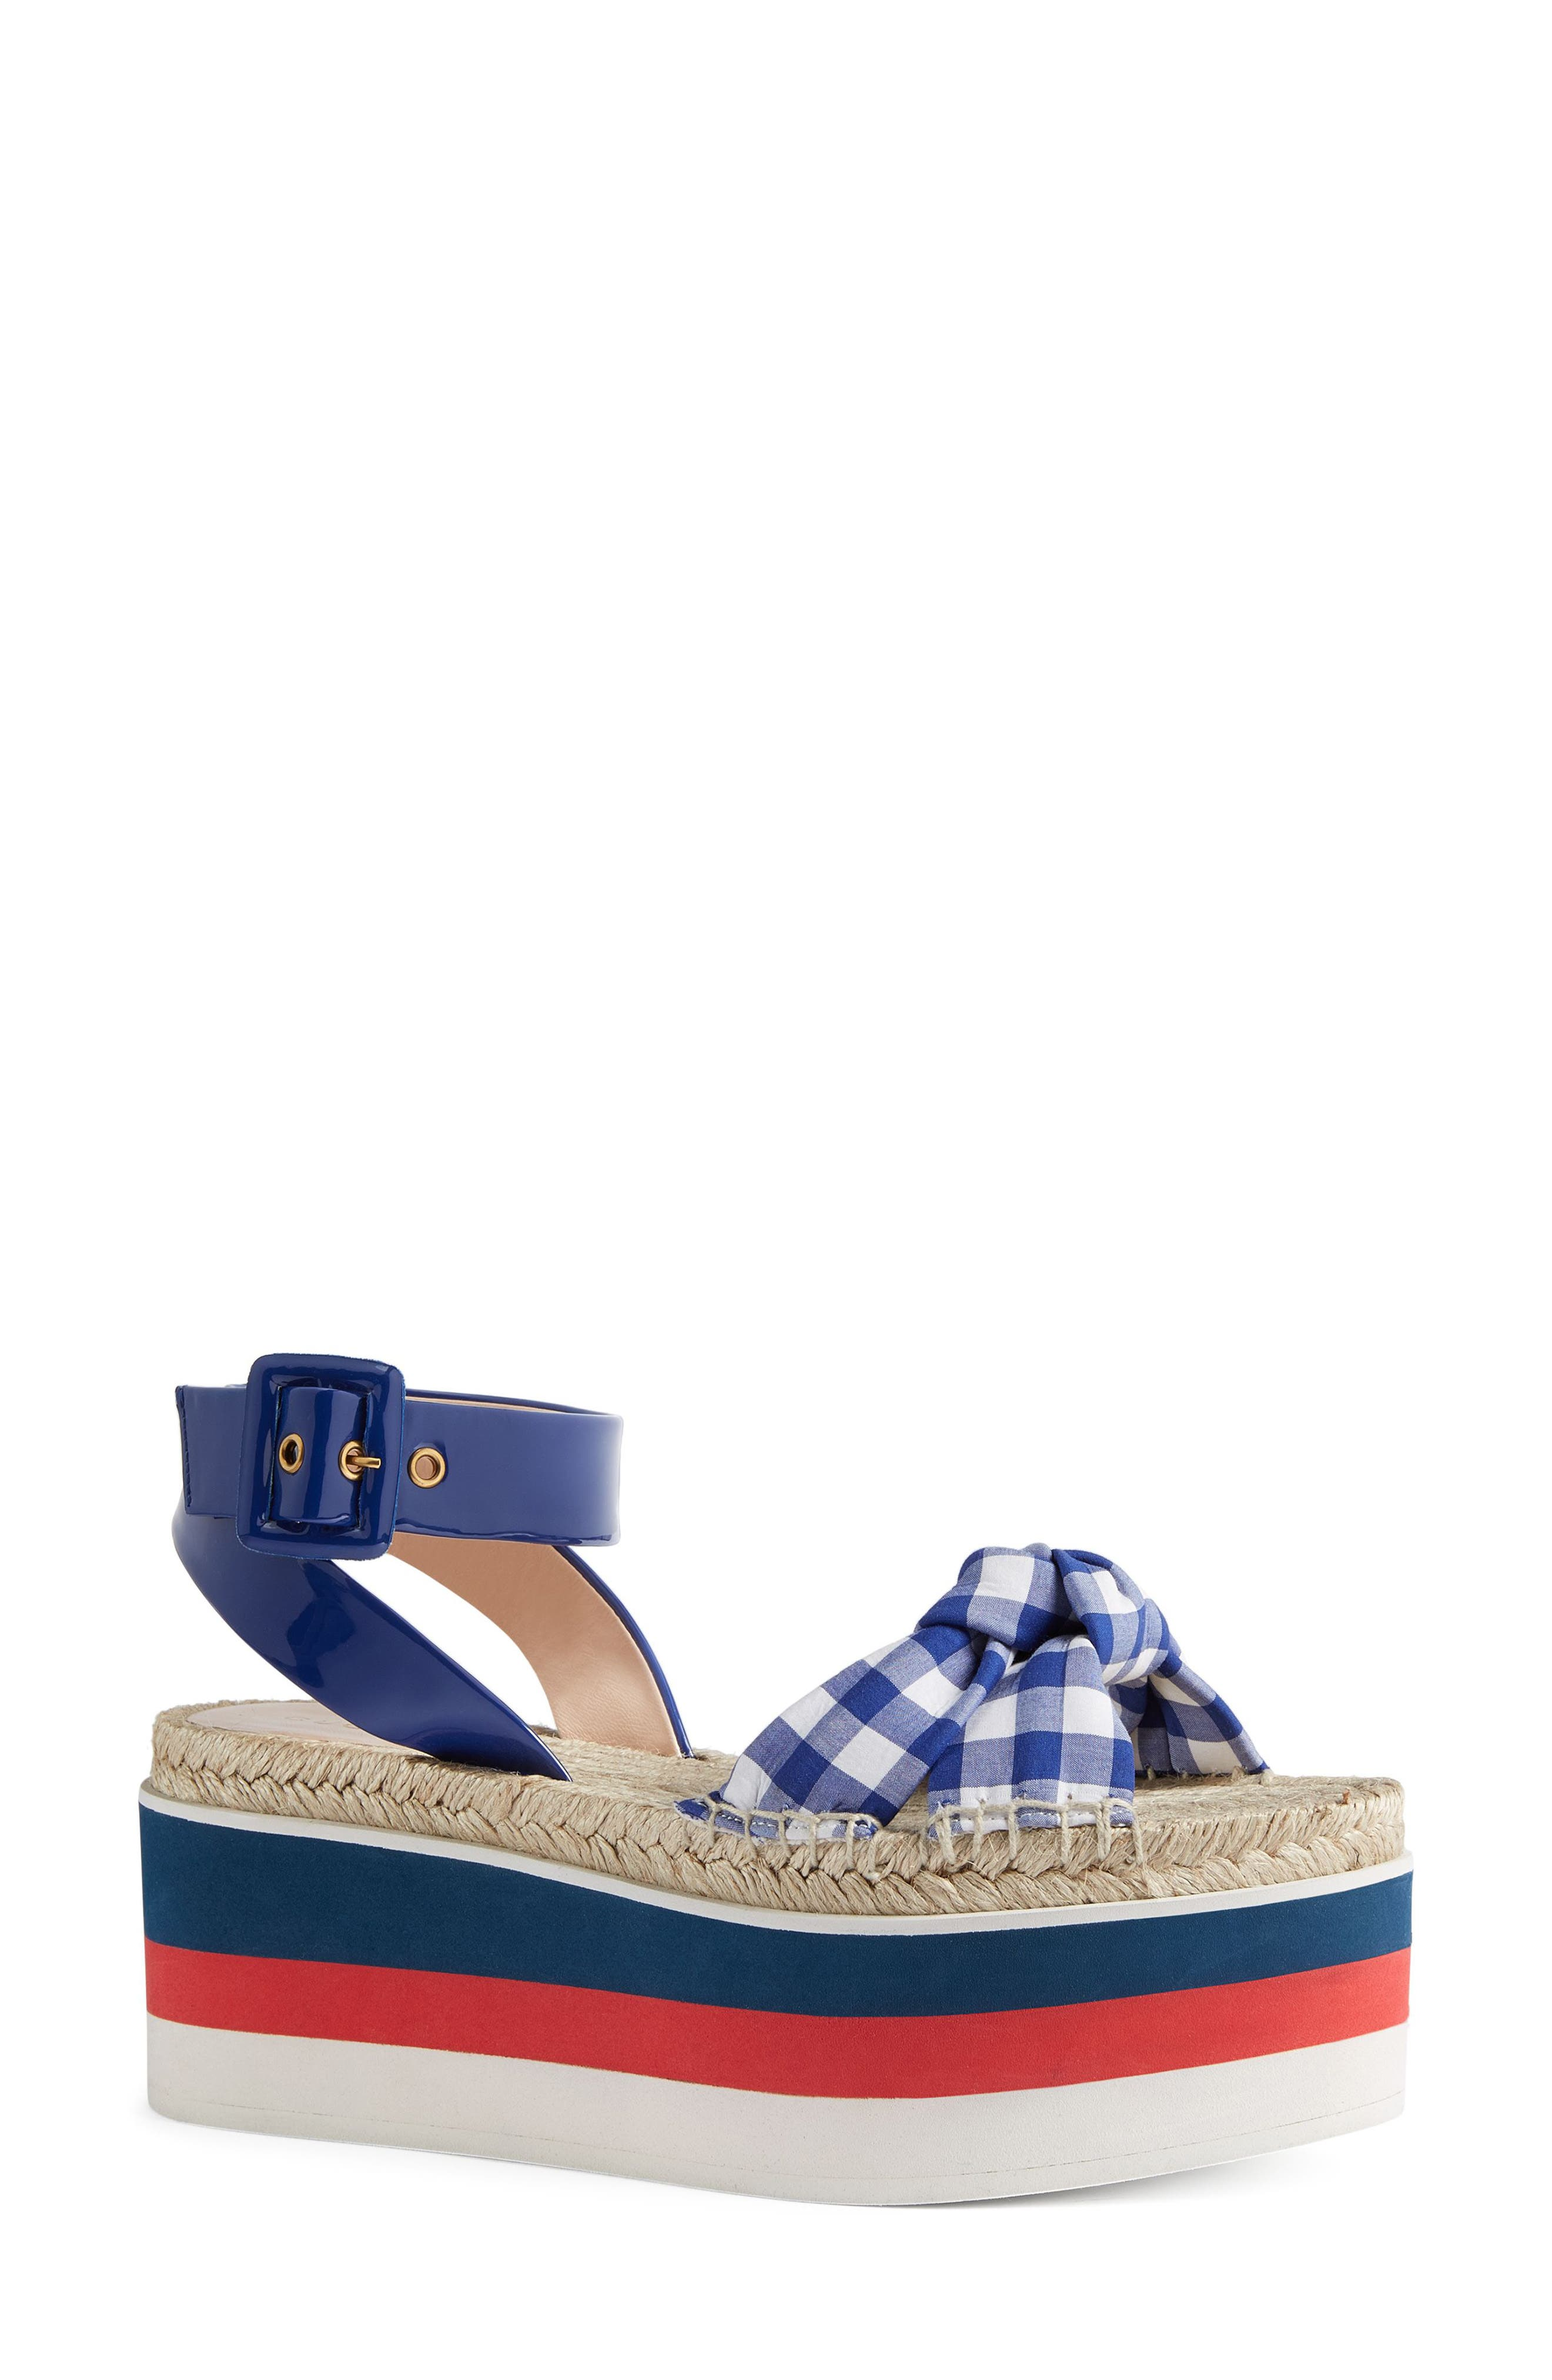 Sefir Flatform Sandal,                         Main,                         color, 464